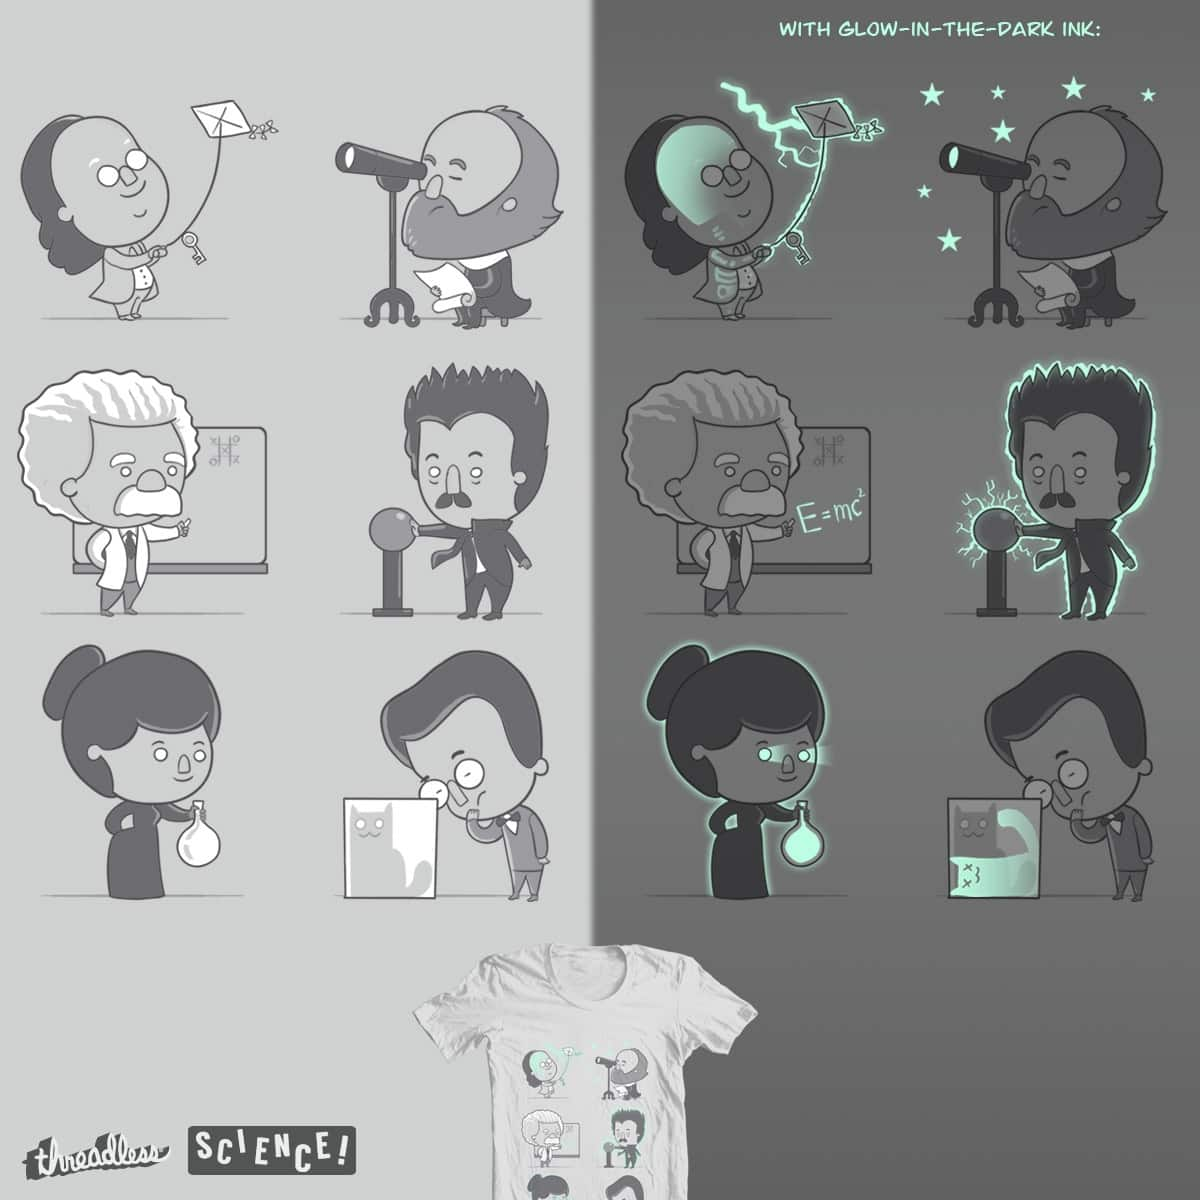 Score Good Times With Science by queenmob on Threadless